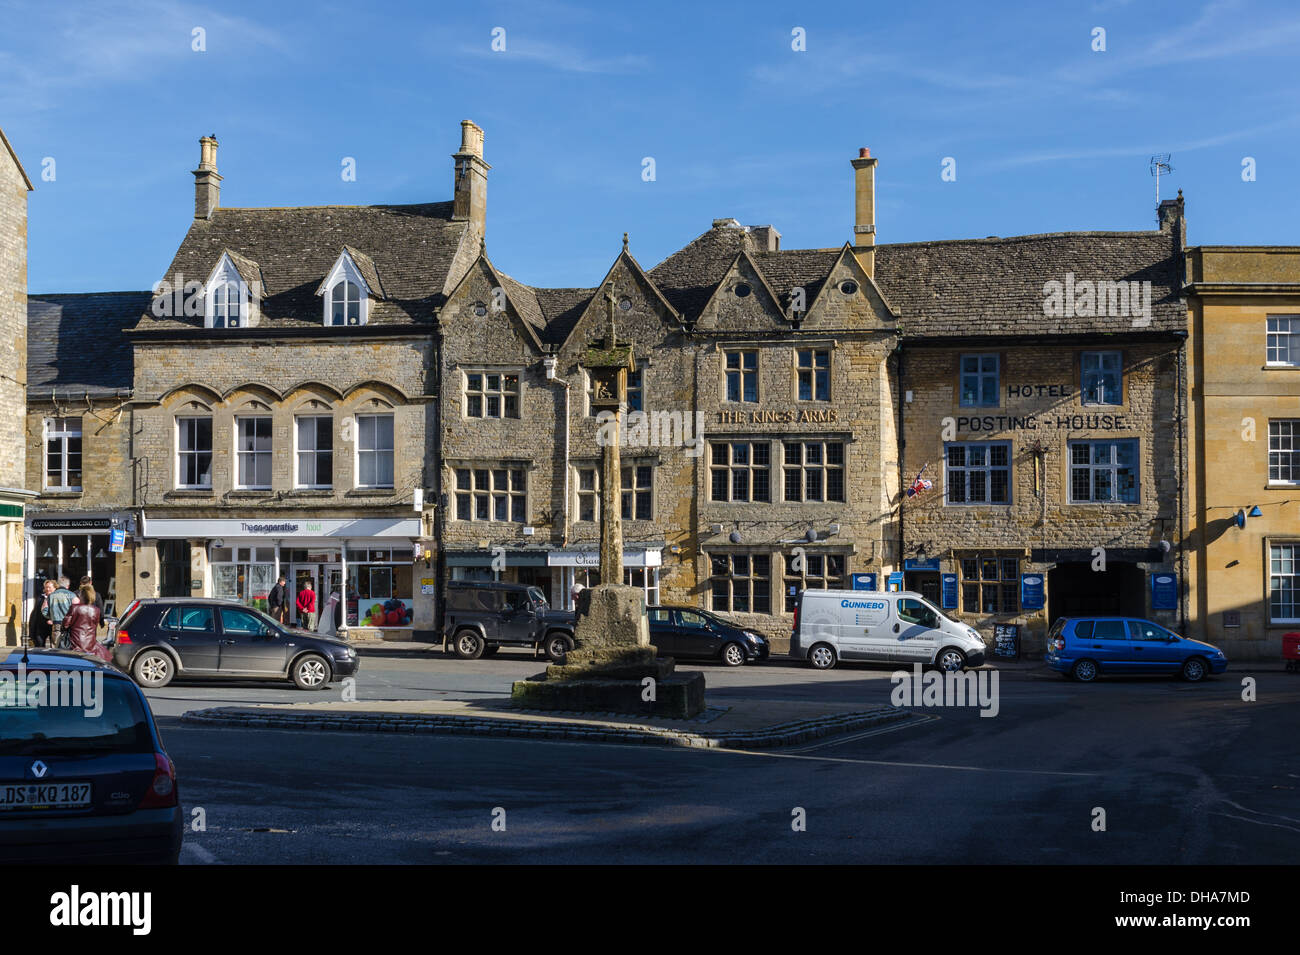 The Kings Arms Hotel and old Posting House in the Cotswold town of Stow-on-the-Wold - Stock Image